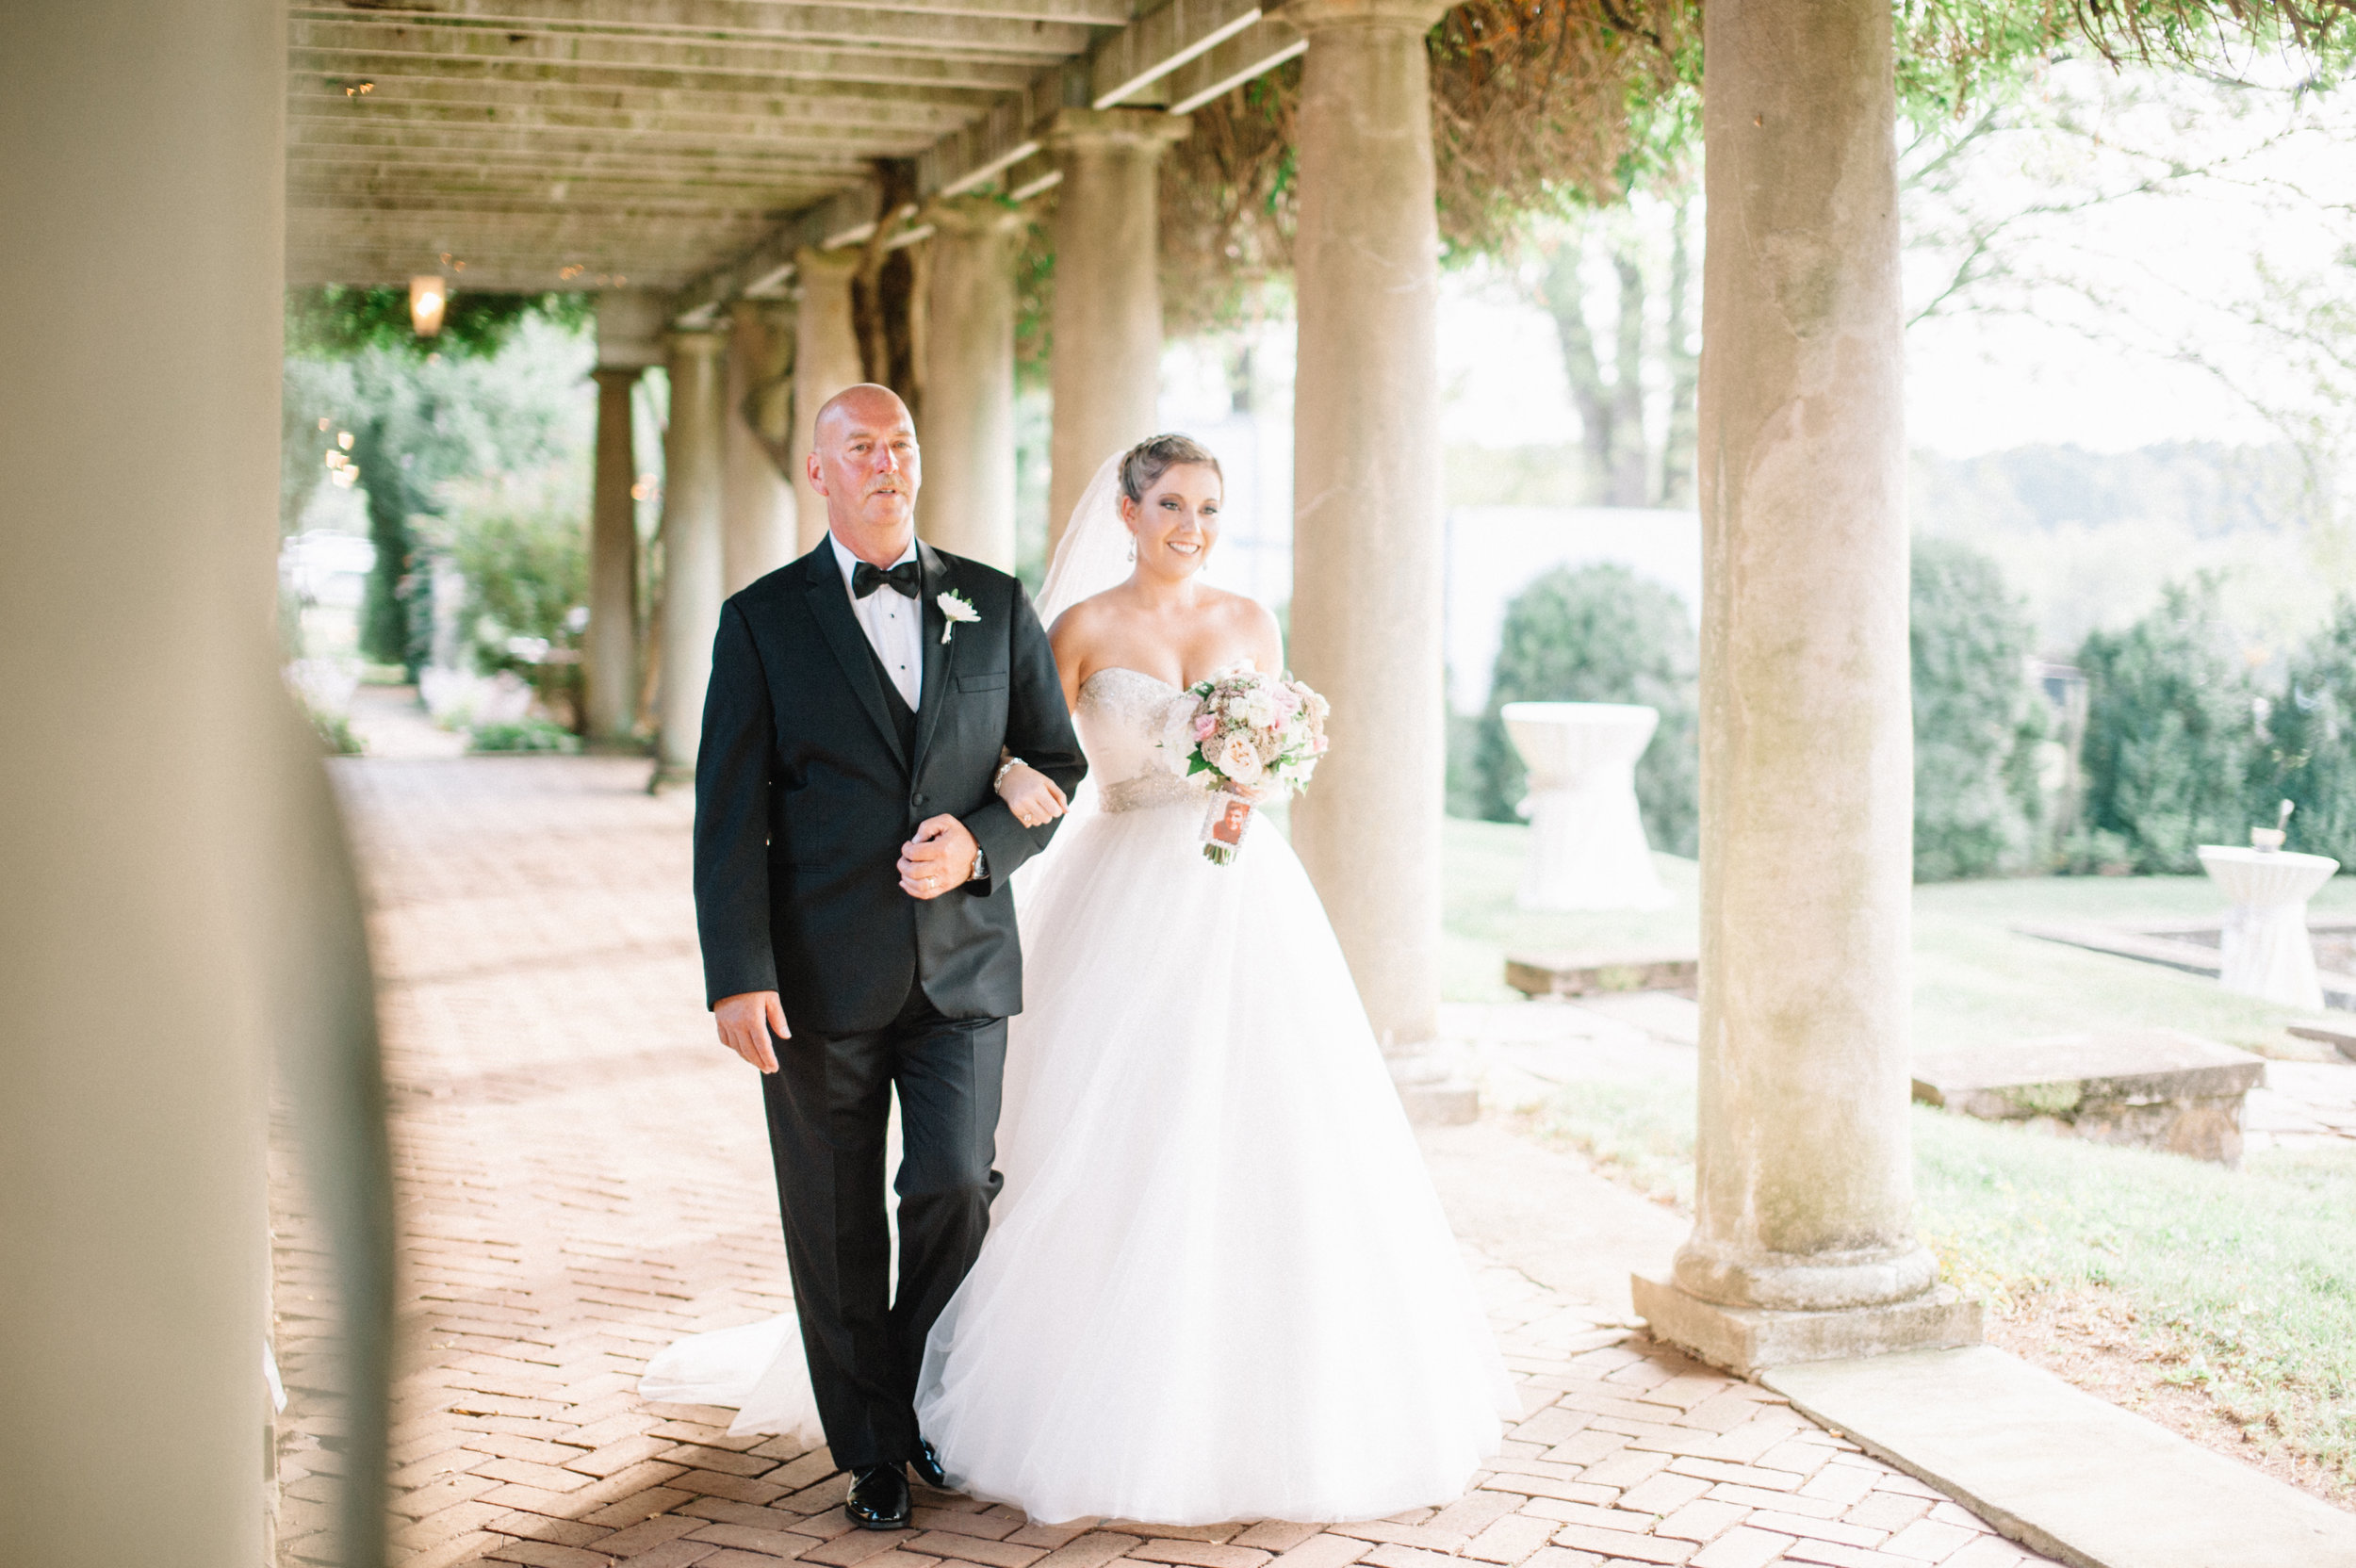 middleburgvirginiaweddingphotographer